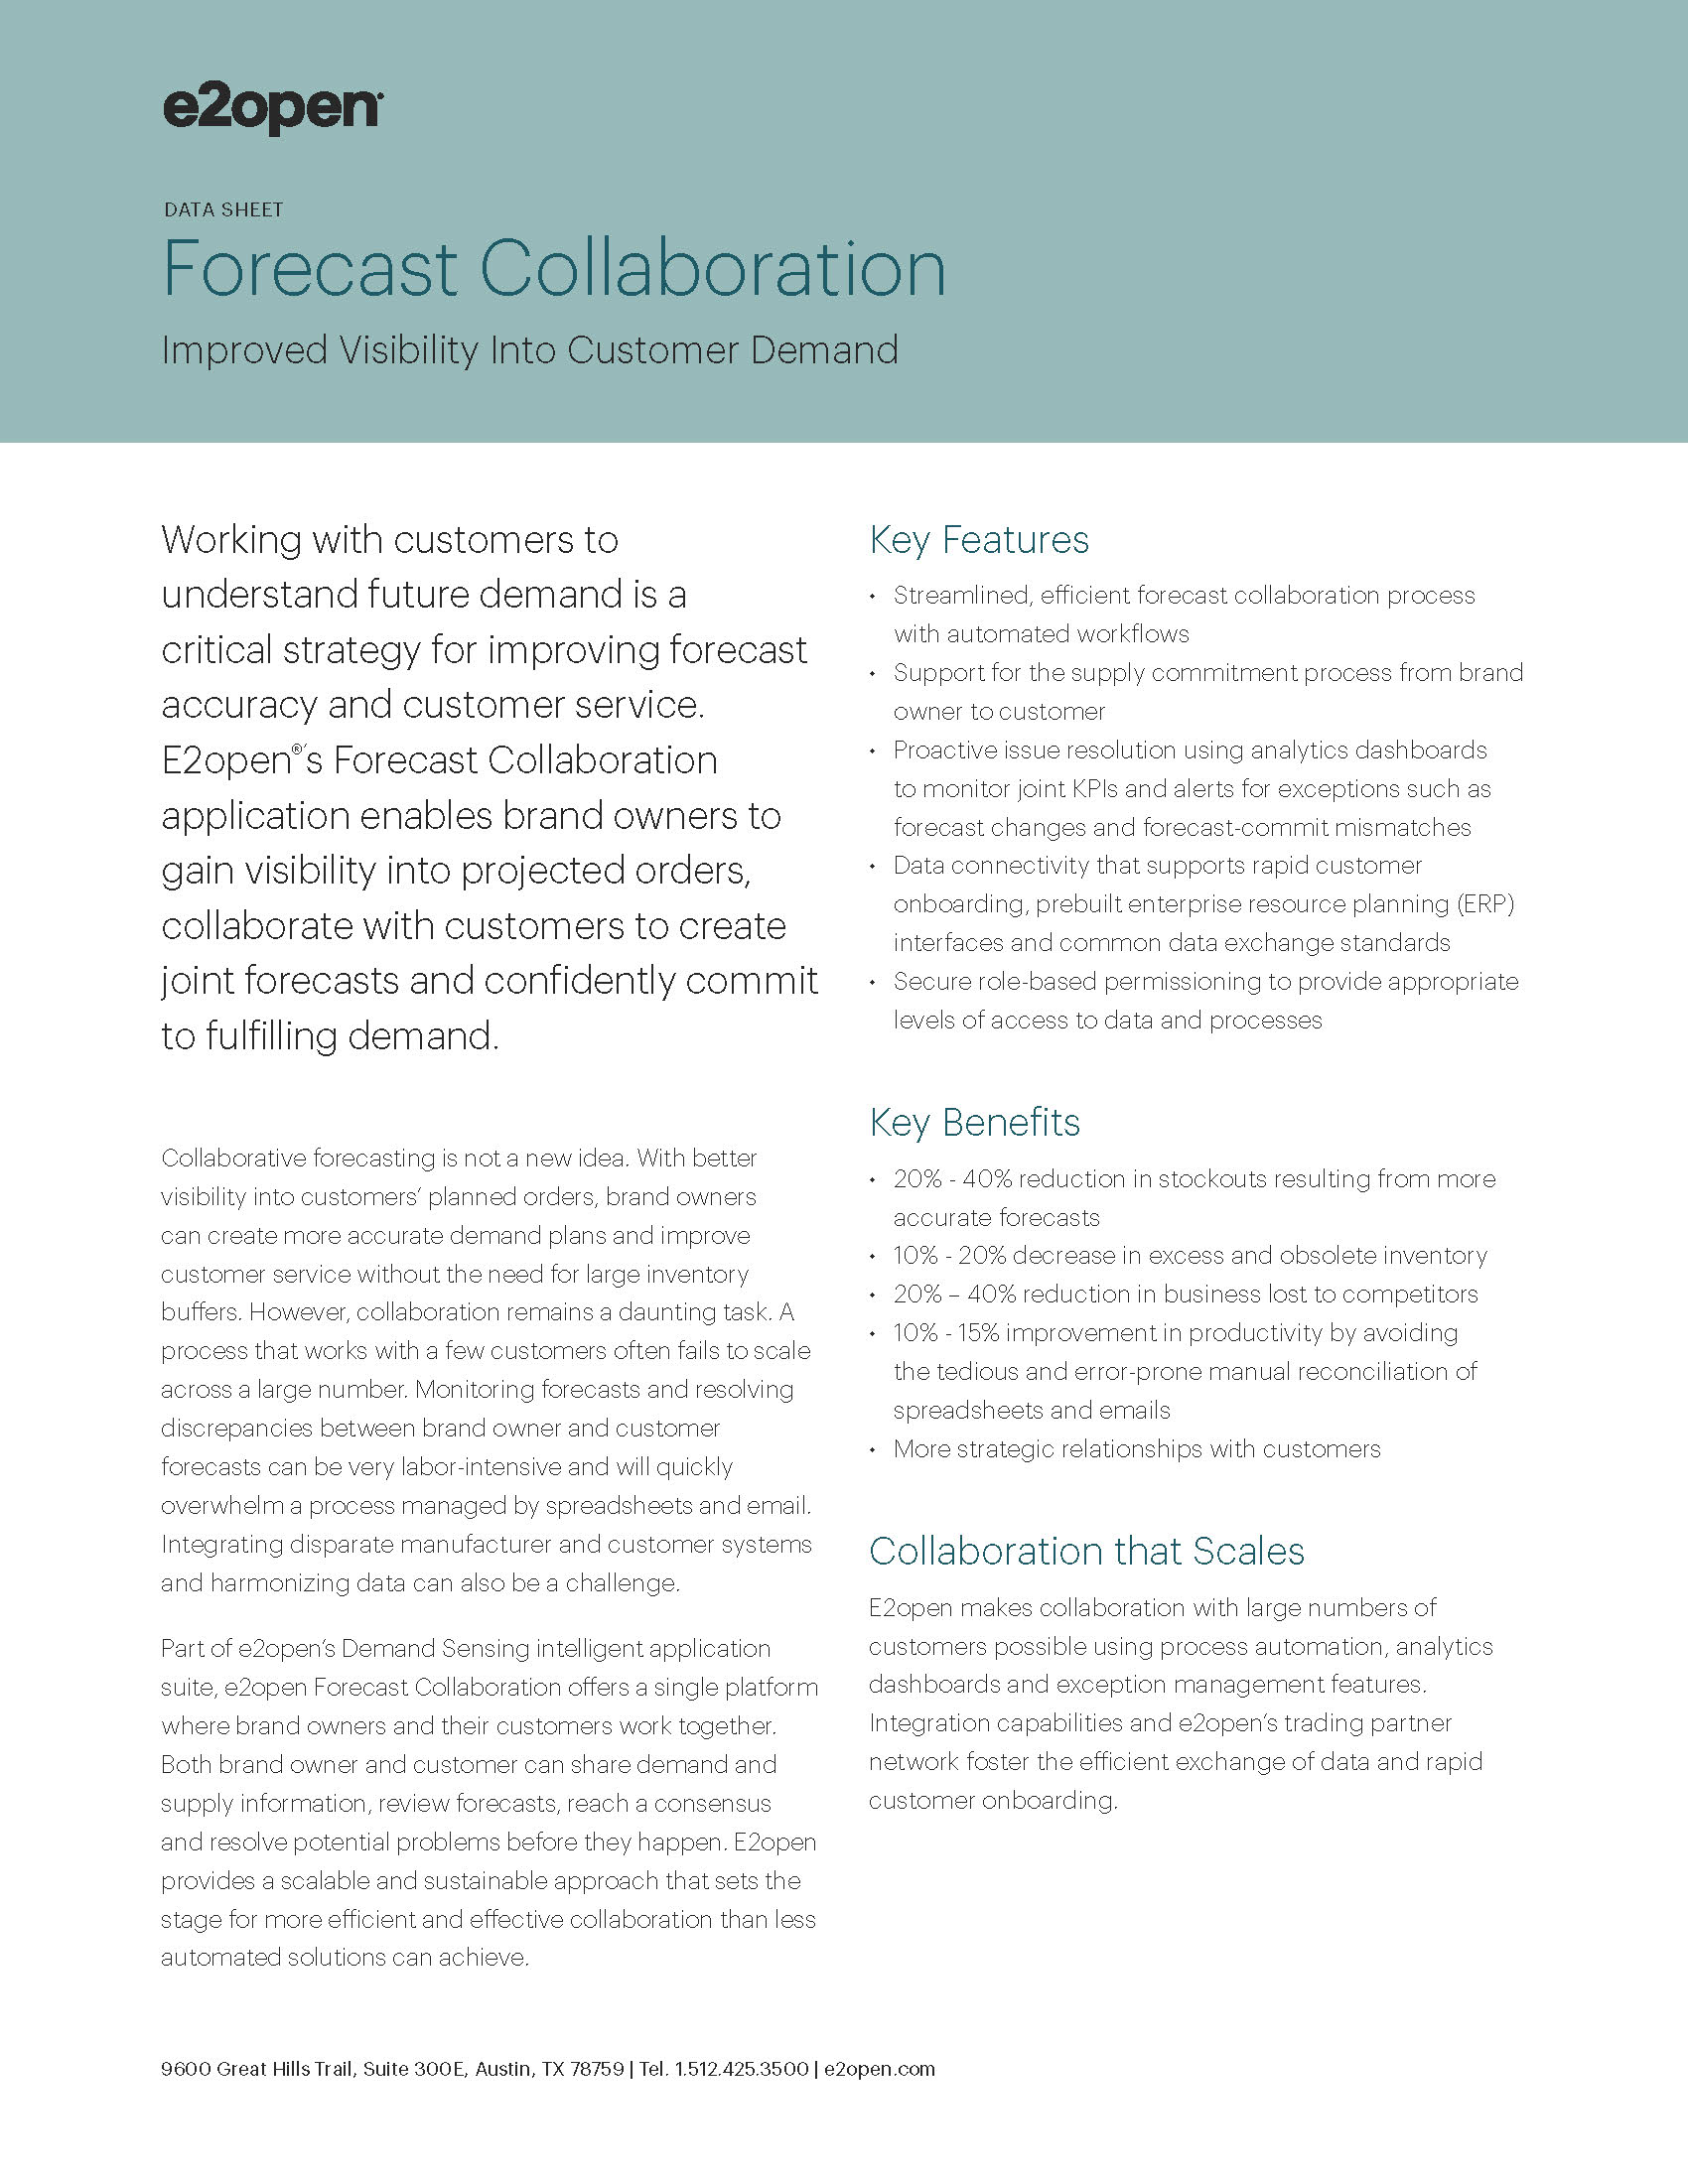 E2open Forecast Collaboration Demand Sensing Data Sheet